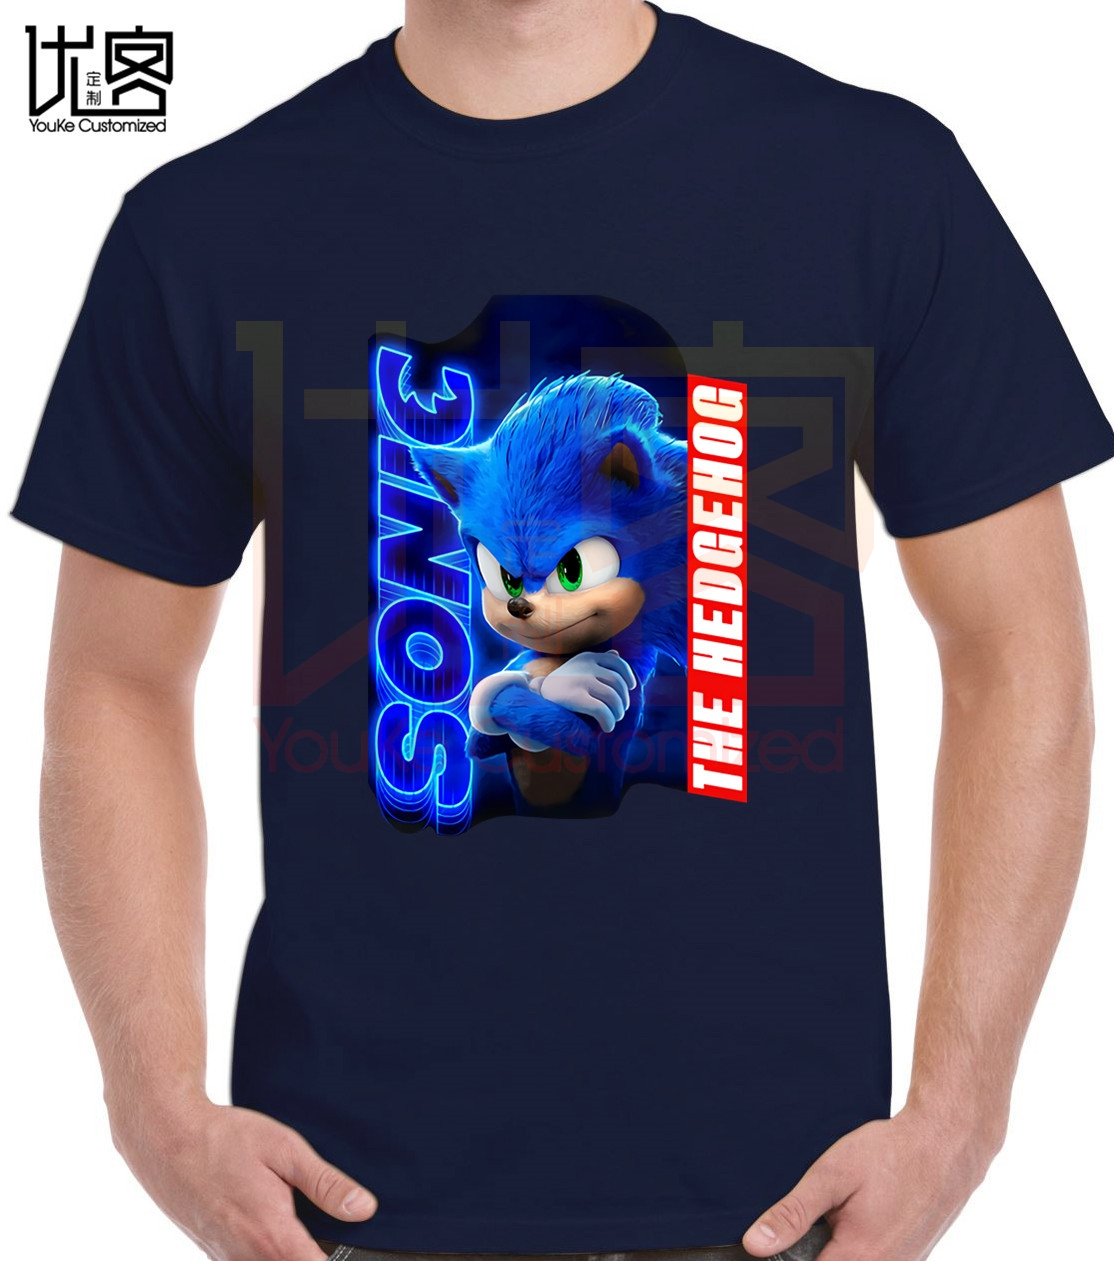 New Sonic The Hedgehog Movie 2020 Unisex T Shirt Logo Design Limited Edition Men S Women S 100 Cotton Short Sleeves Tops Tee T Shirts Aliexpress